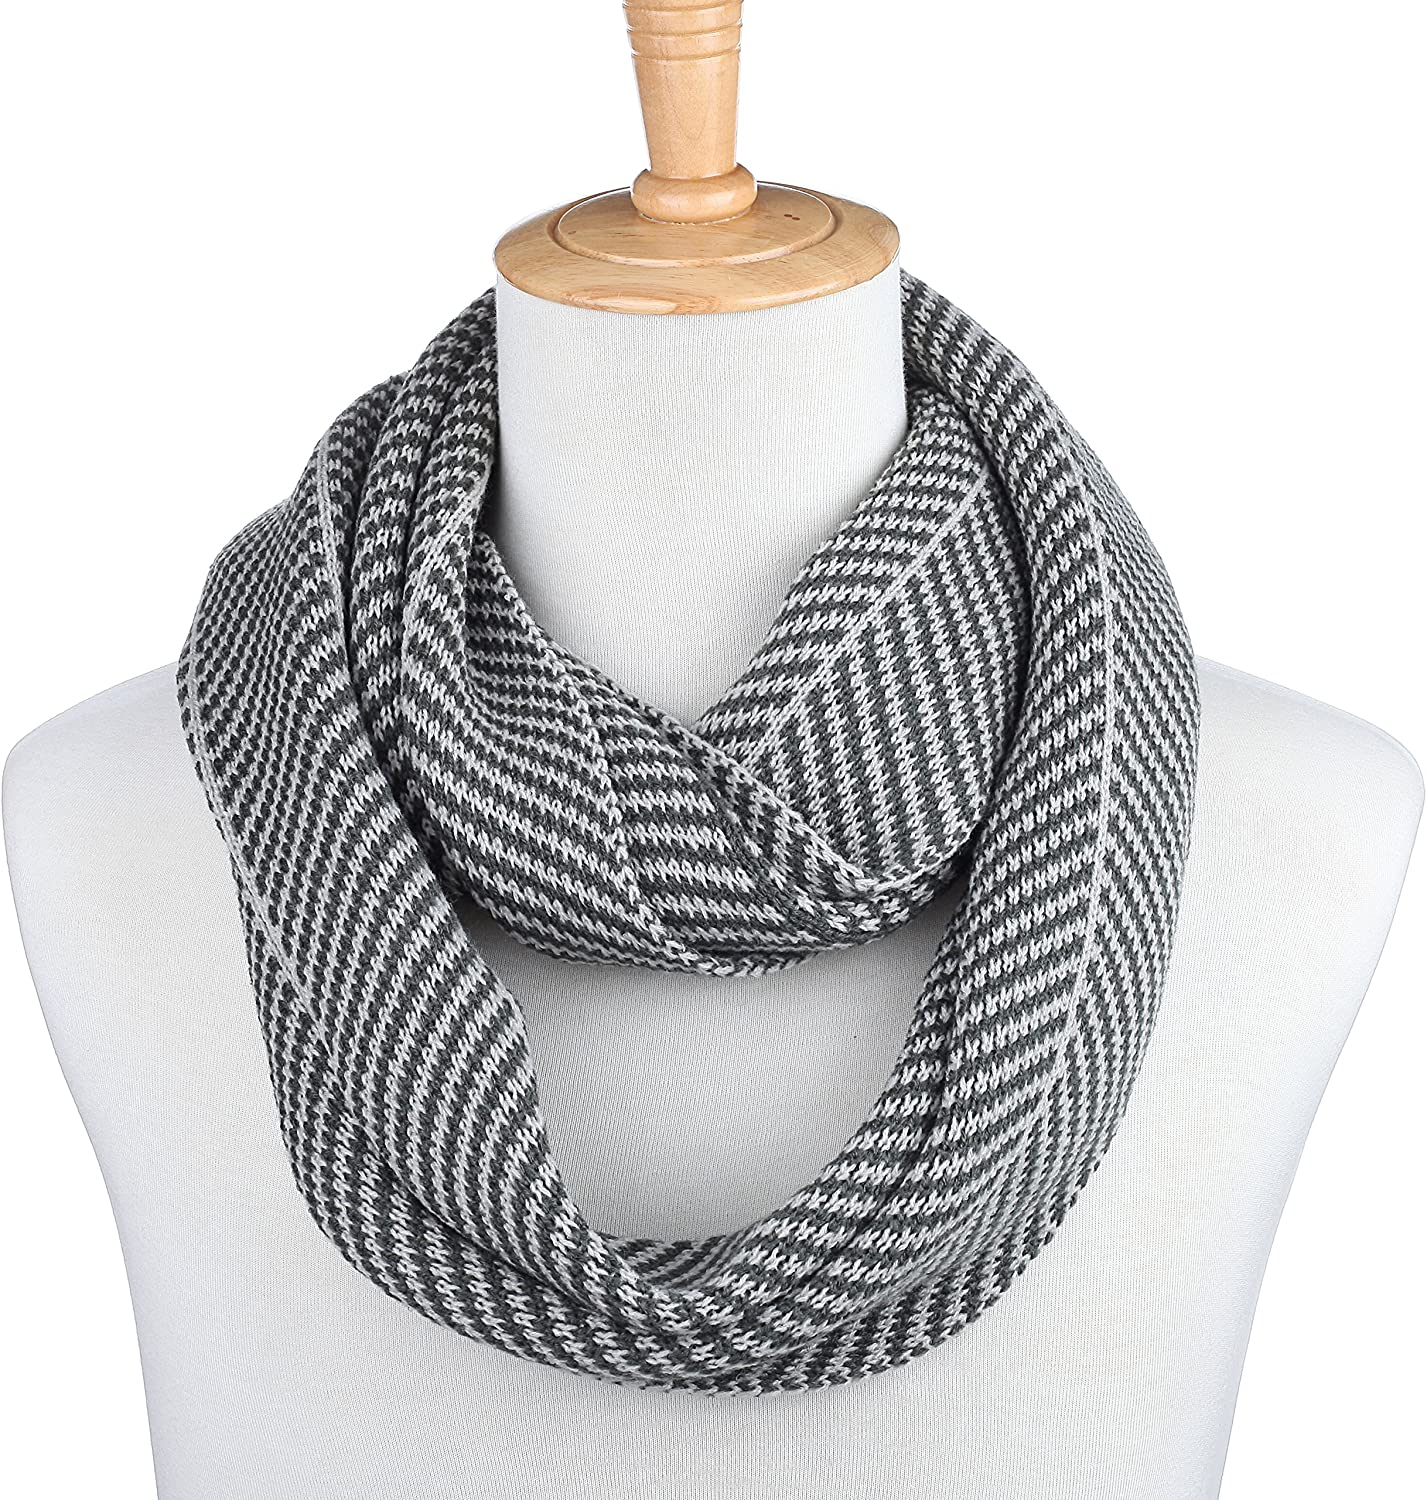 Gallery Seven Winter Scarf for Men, Soft Knit Scarves, in an Elegant Gift Box - Gray - One Size